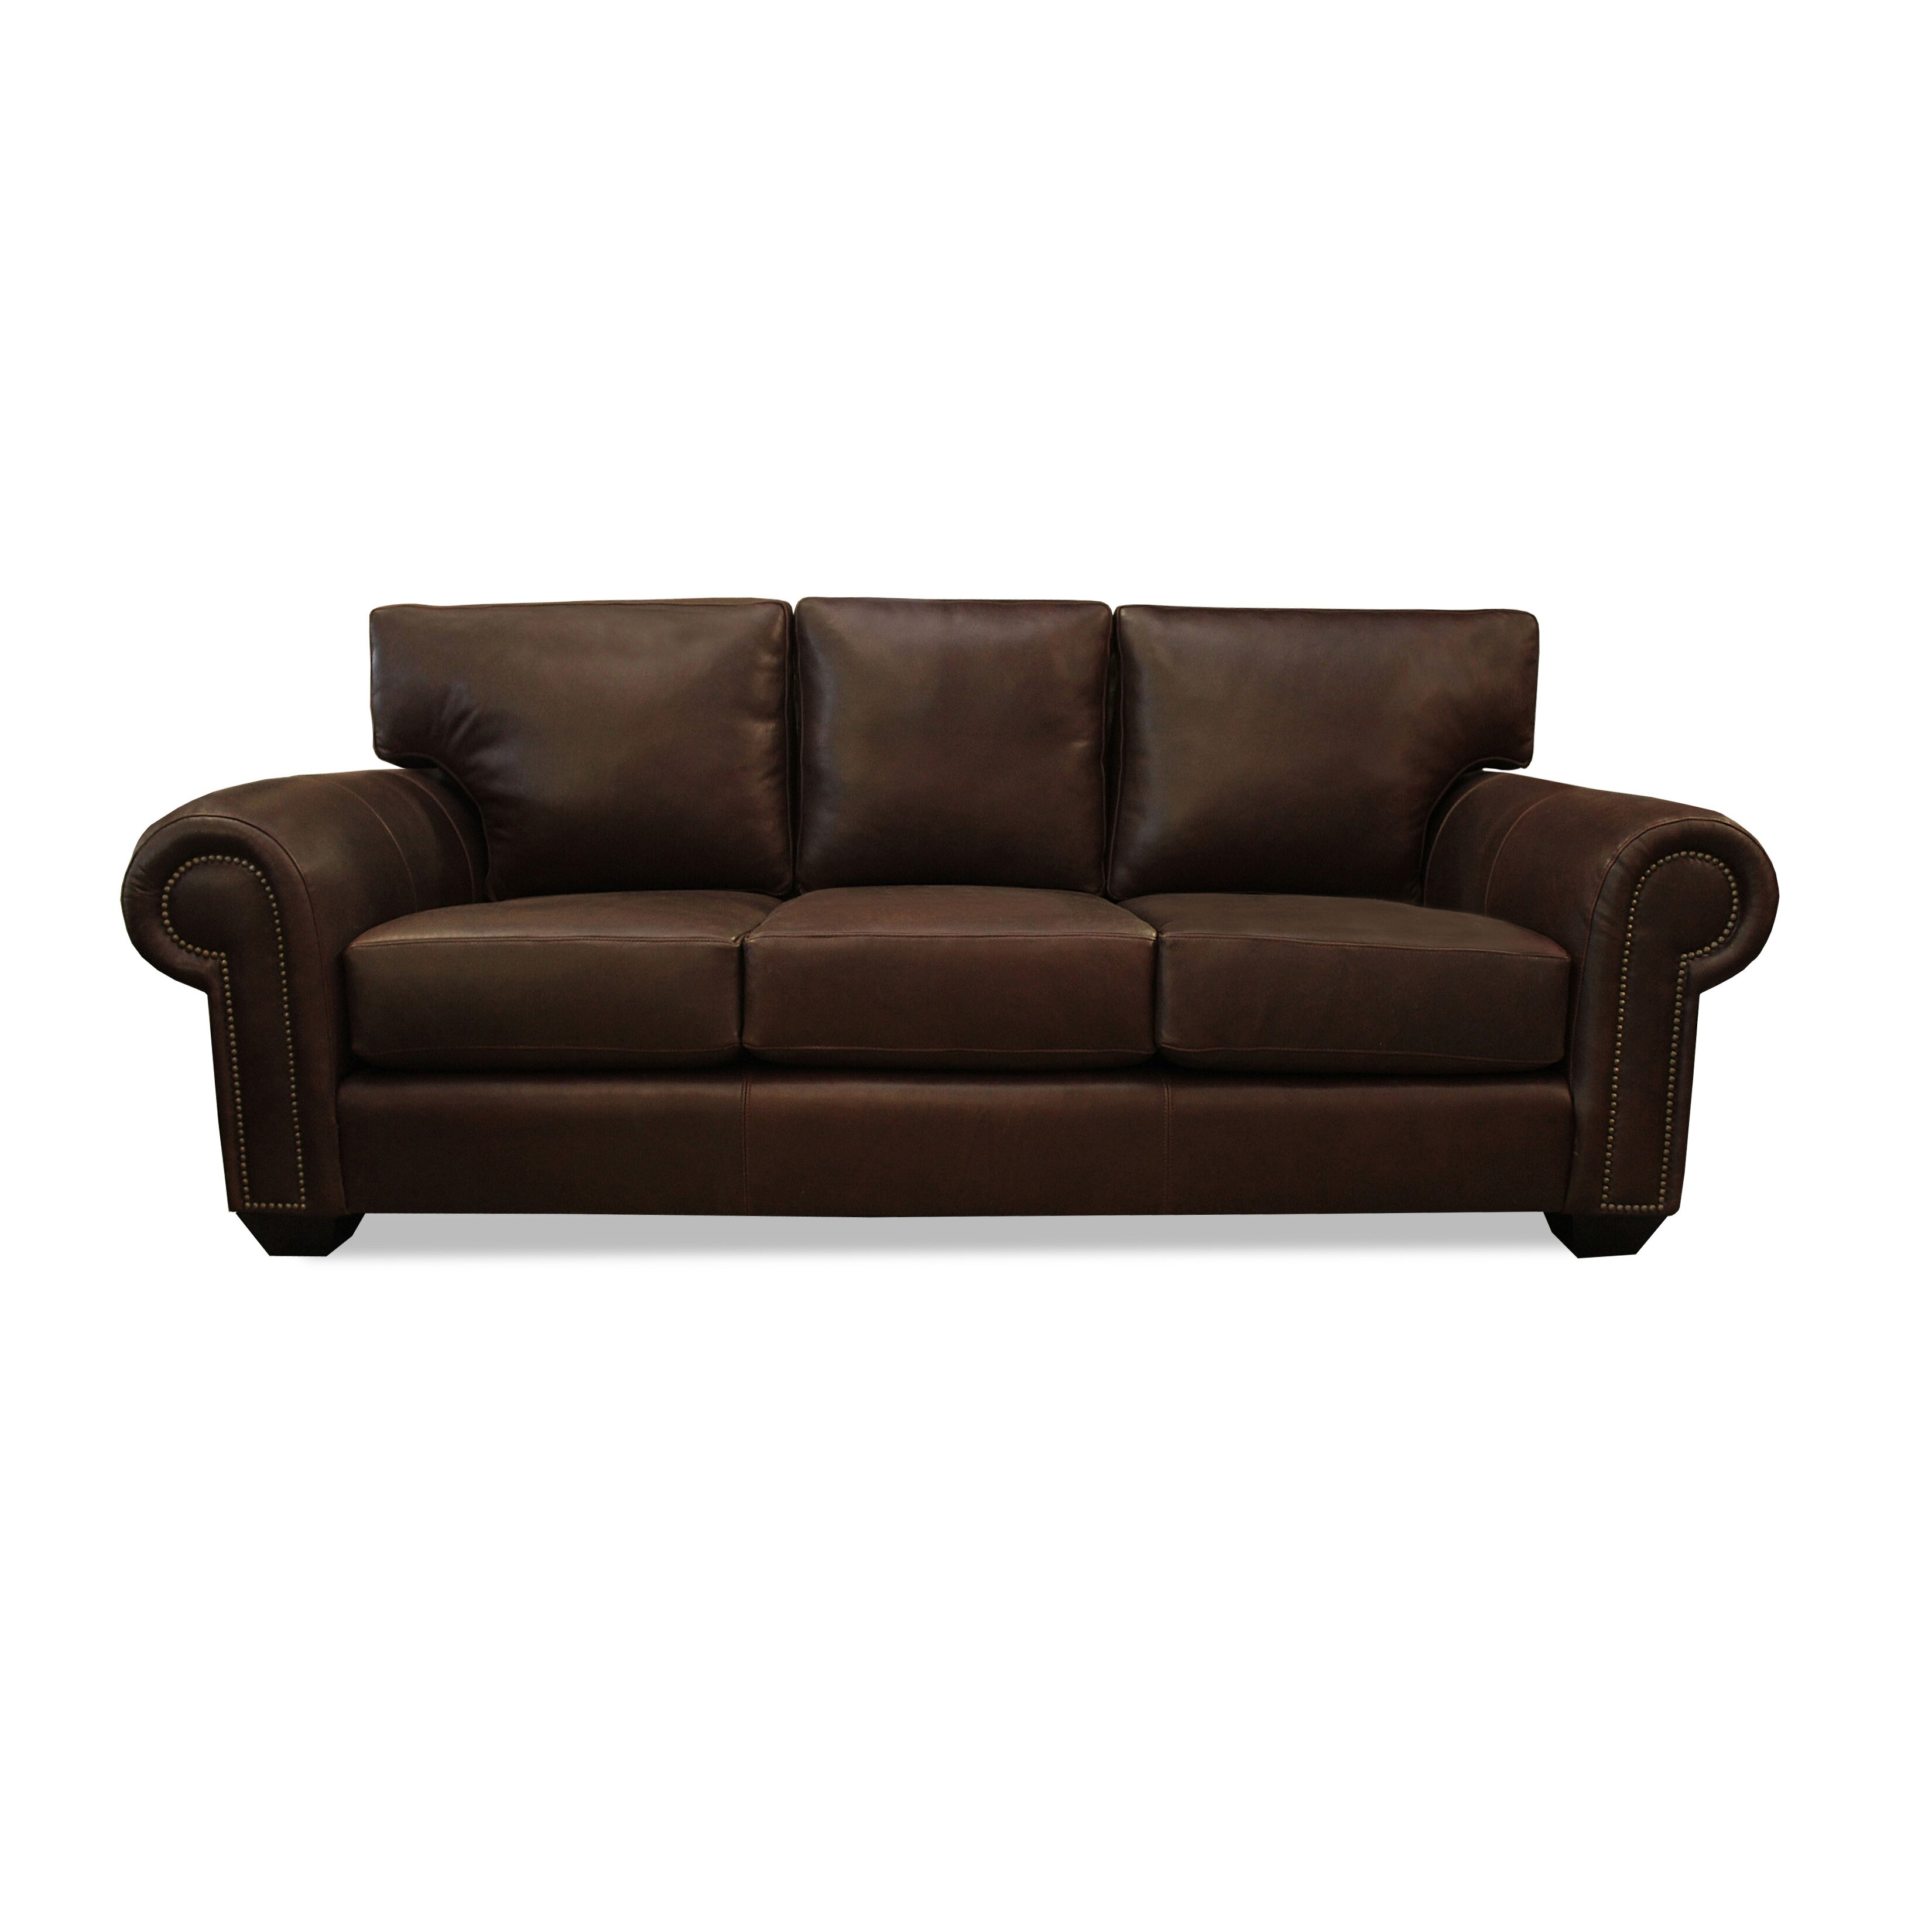 """Leather Recliner Sofa Manchester: South Cone Home Manchester Leather Sofa 90"""""""